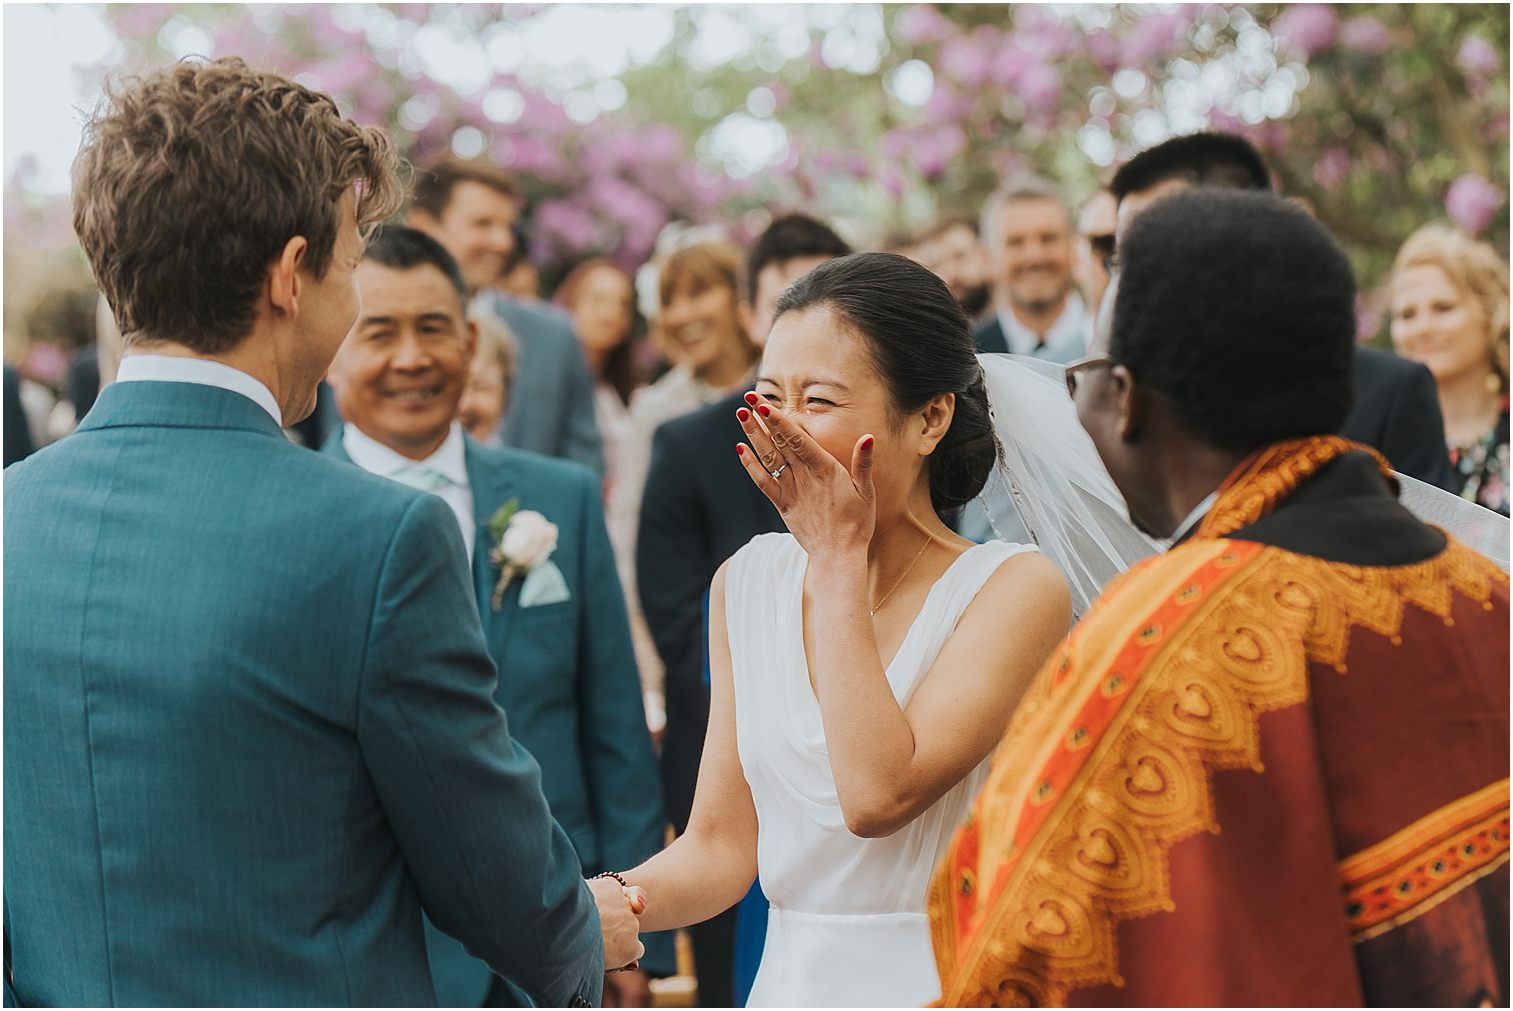 Bride reacting to a funny moment during their wedding ceremony